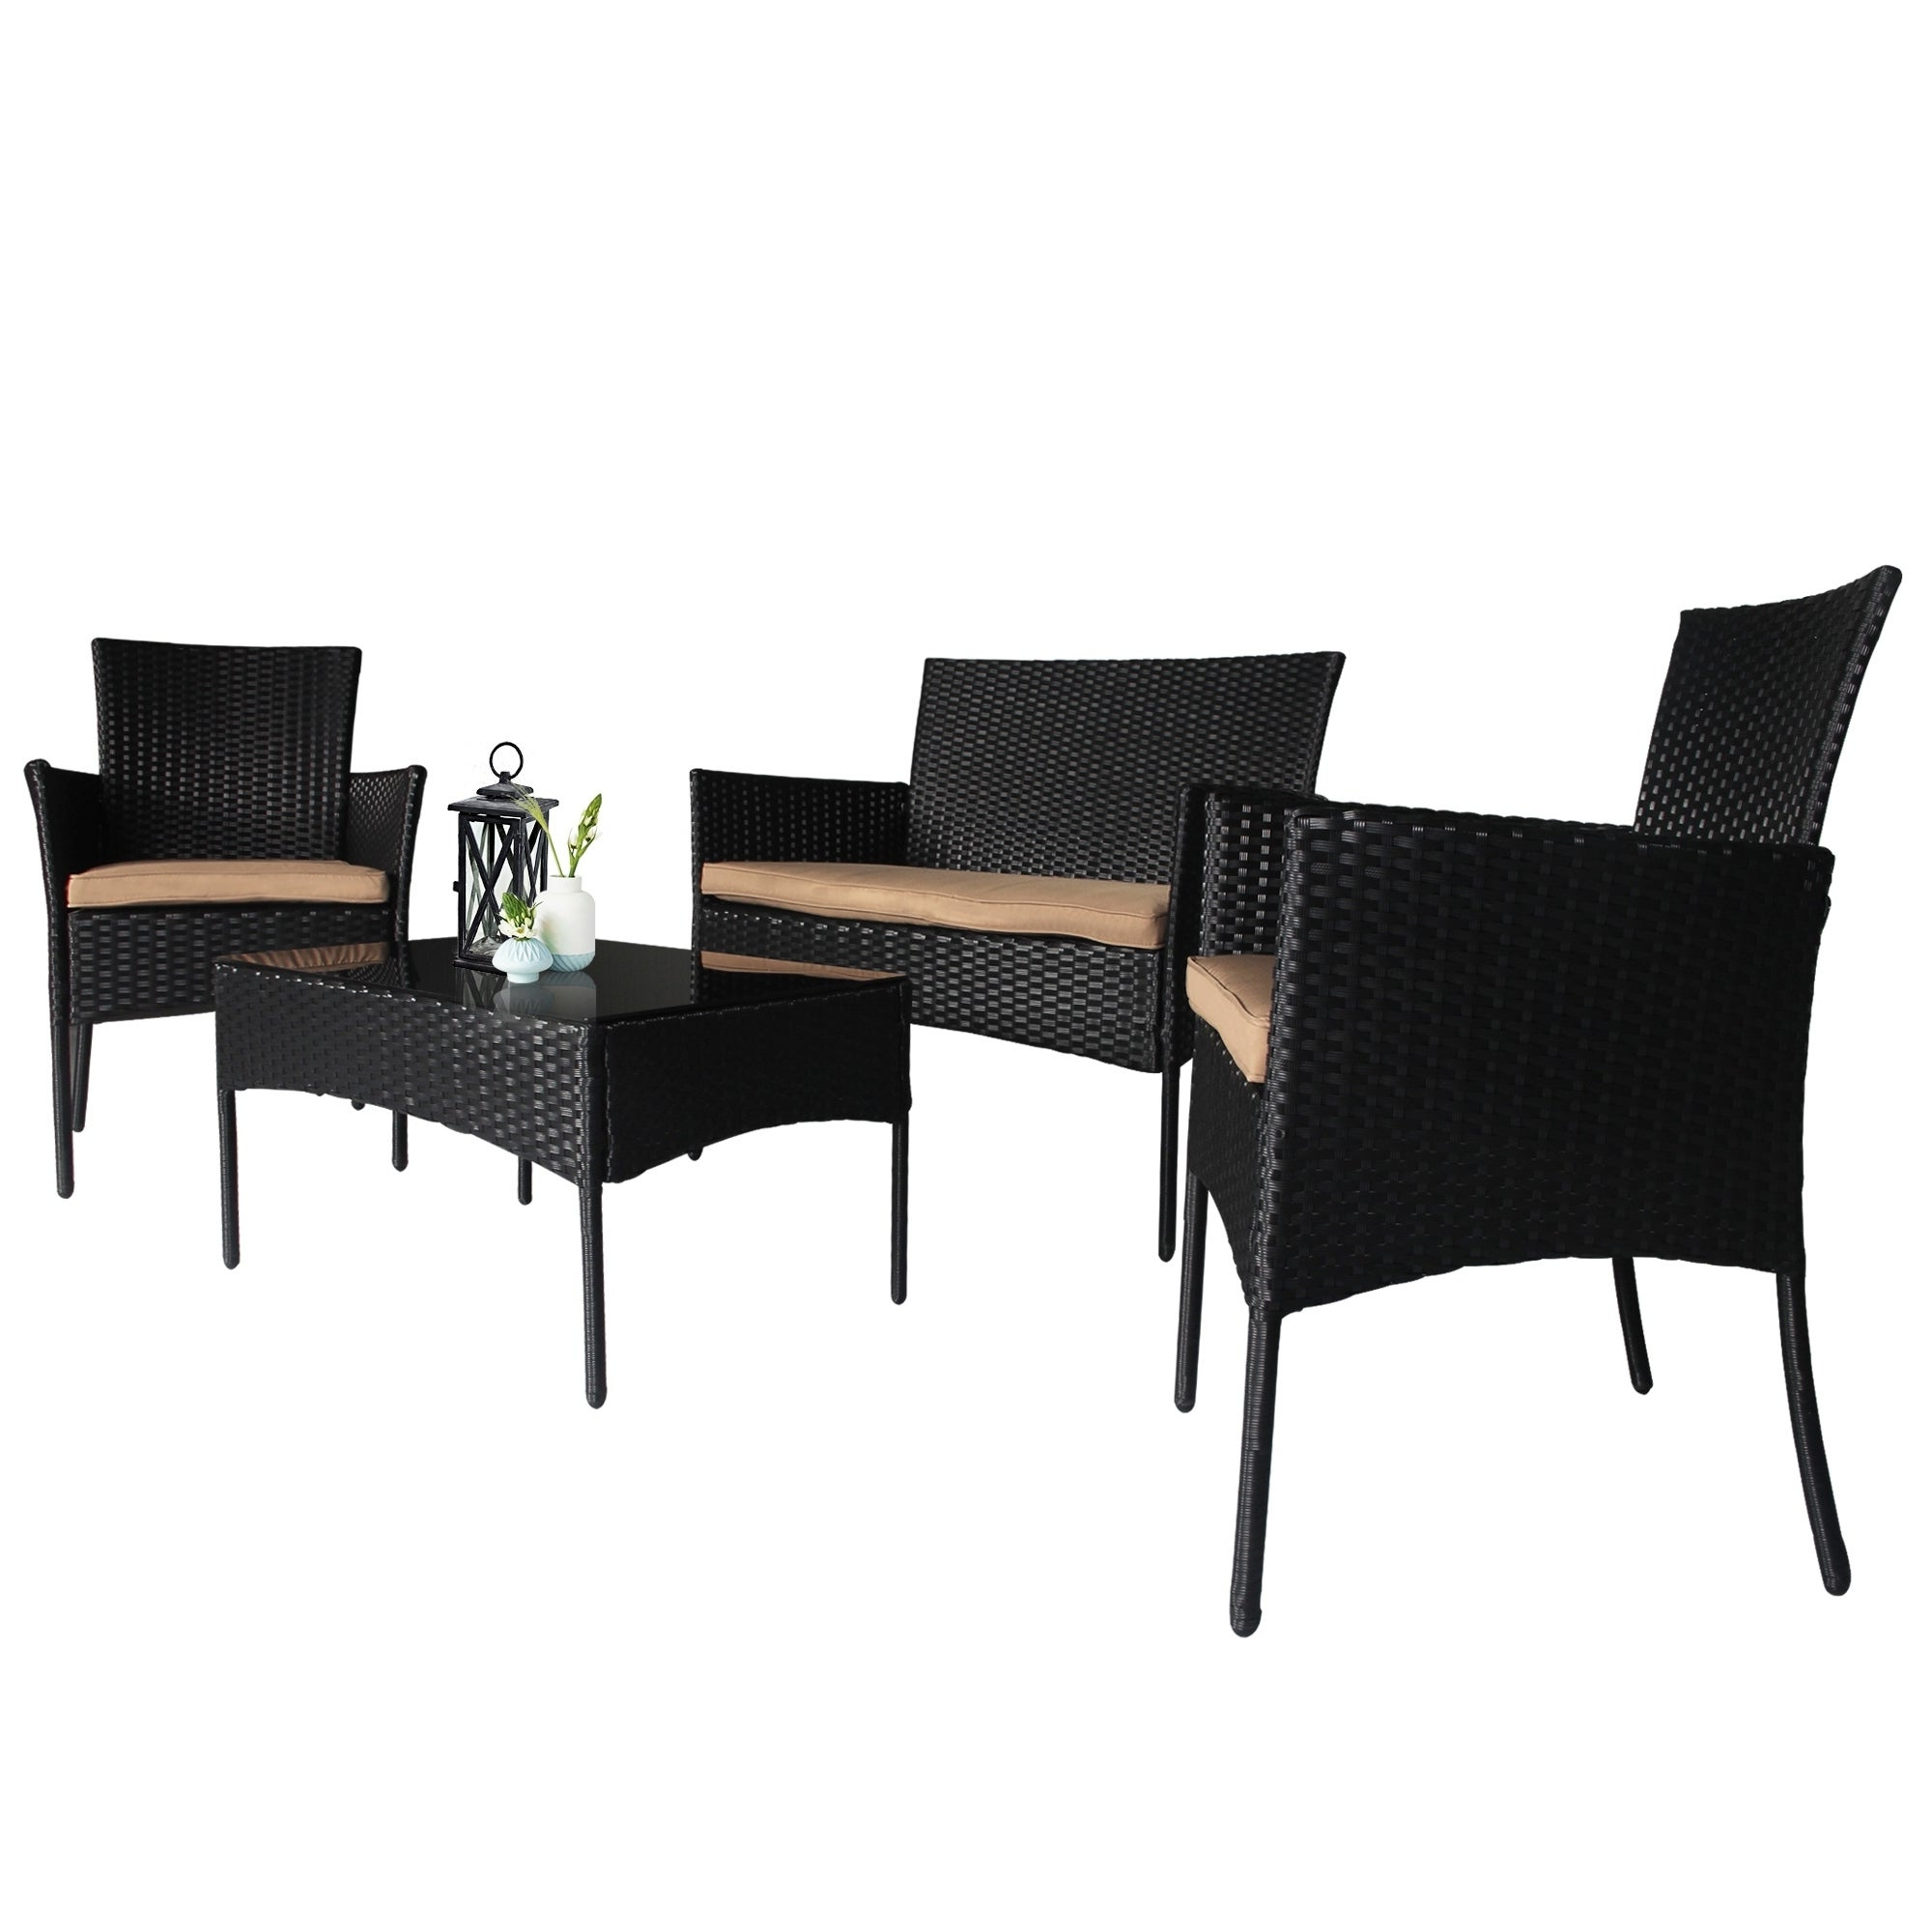 Boyce Outdoor Patio Sectionals With Cushions Within 2019 Boyce 4 Piece Wicker Rattan Conversation Set (Gallery 12 of 25)